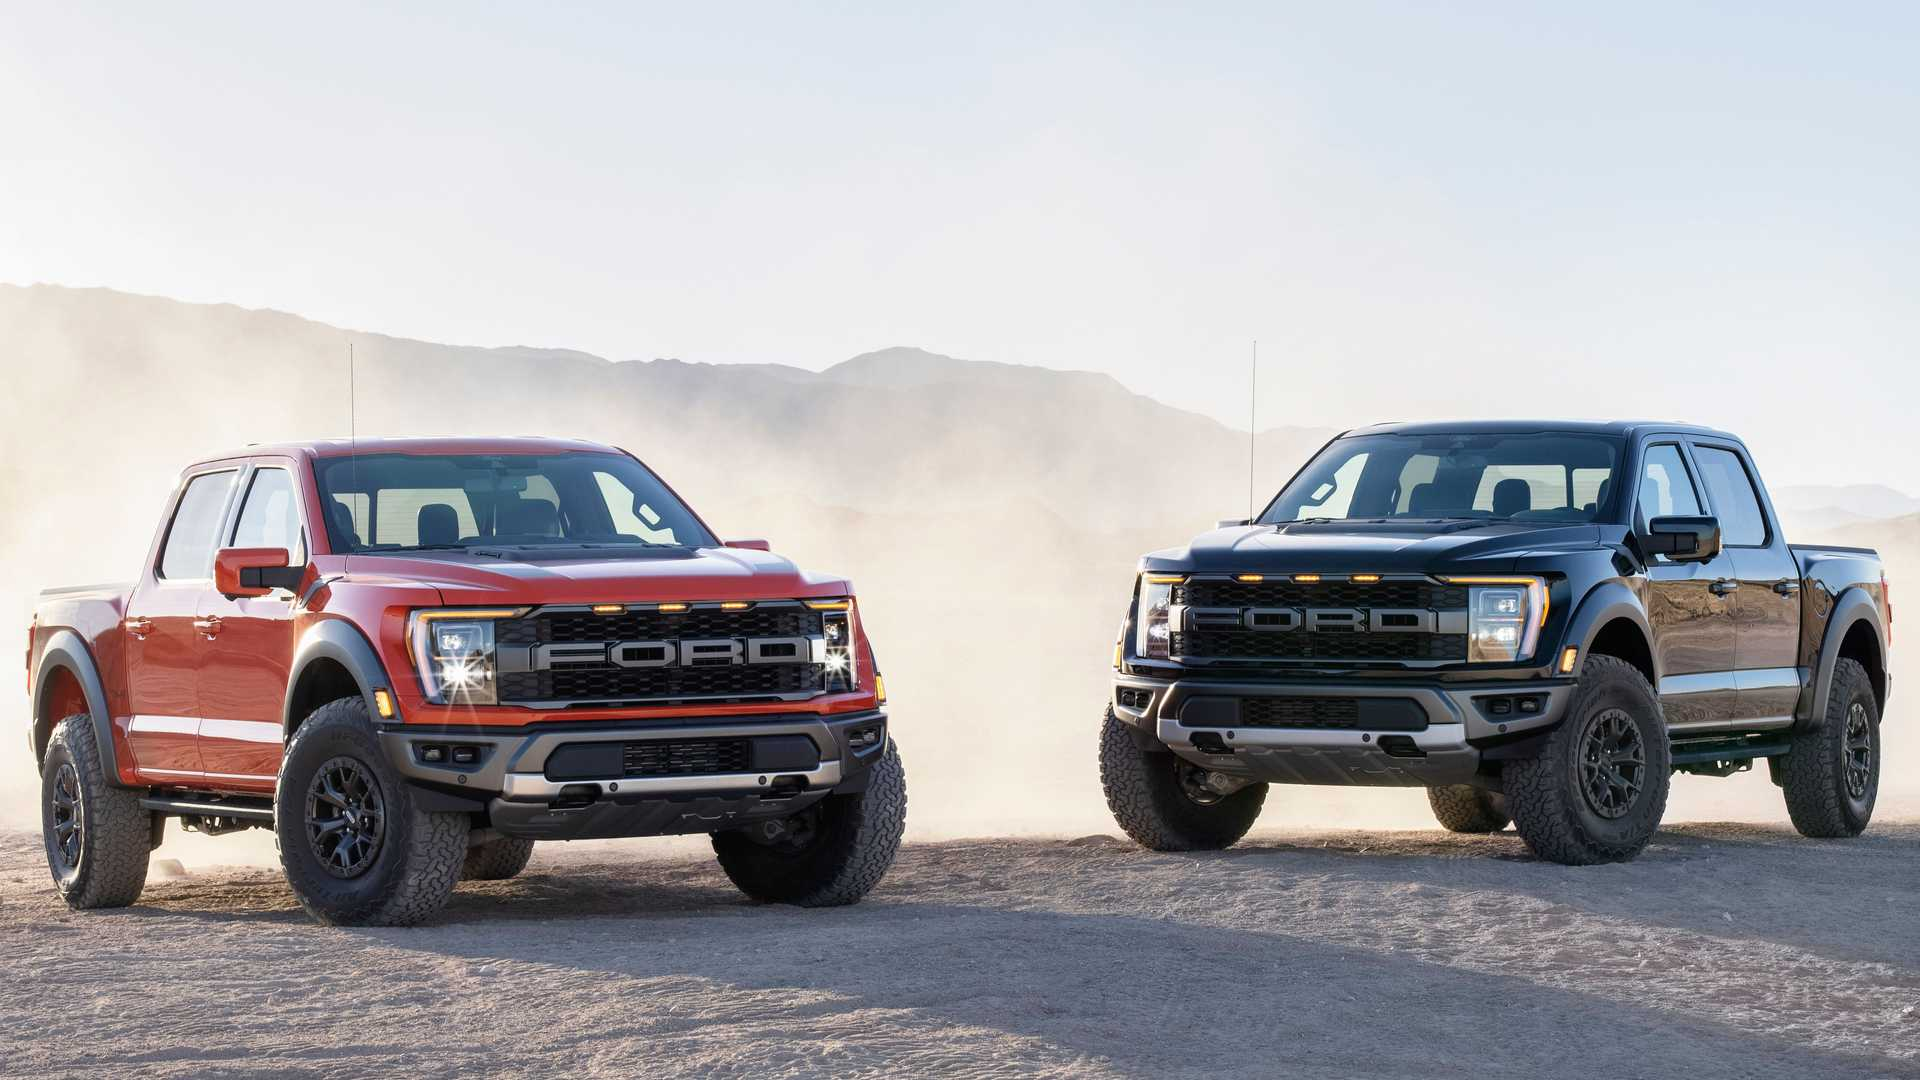 2021 Ford F-150 Raptor in red and black